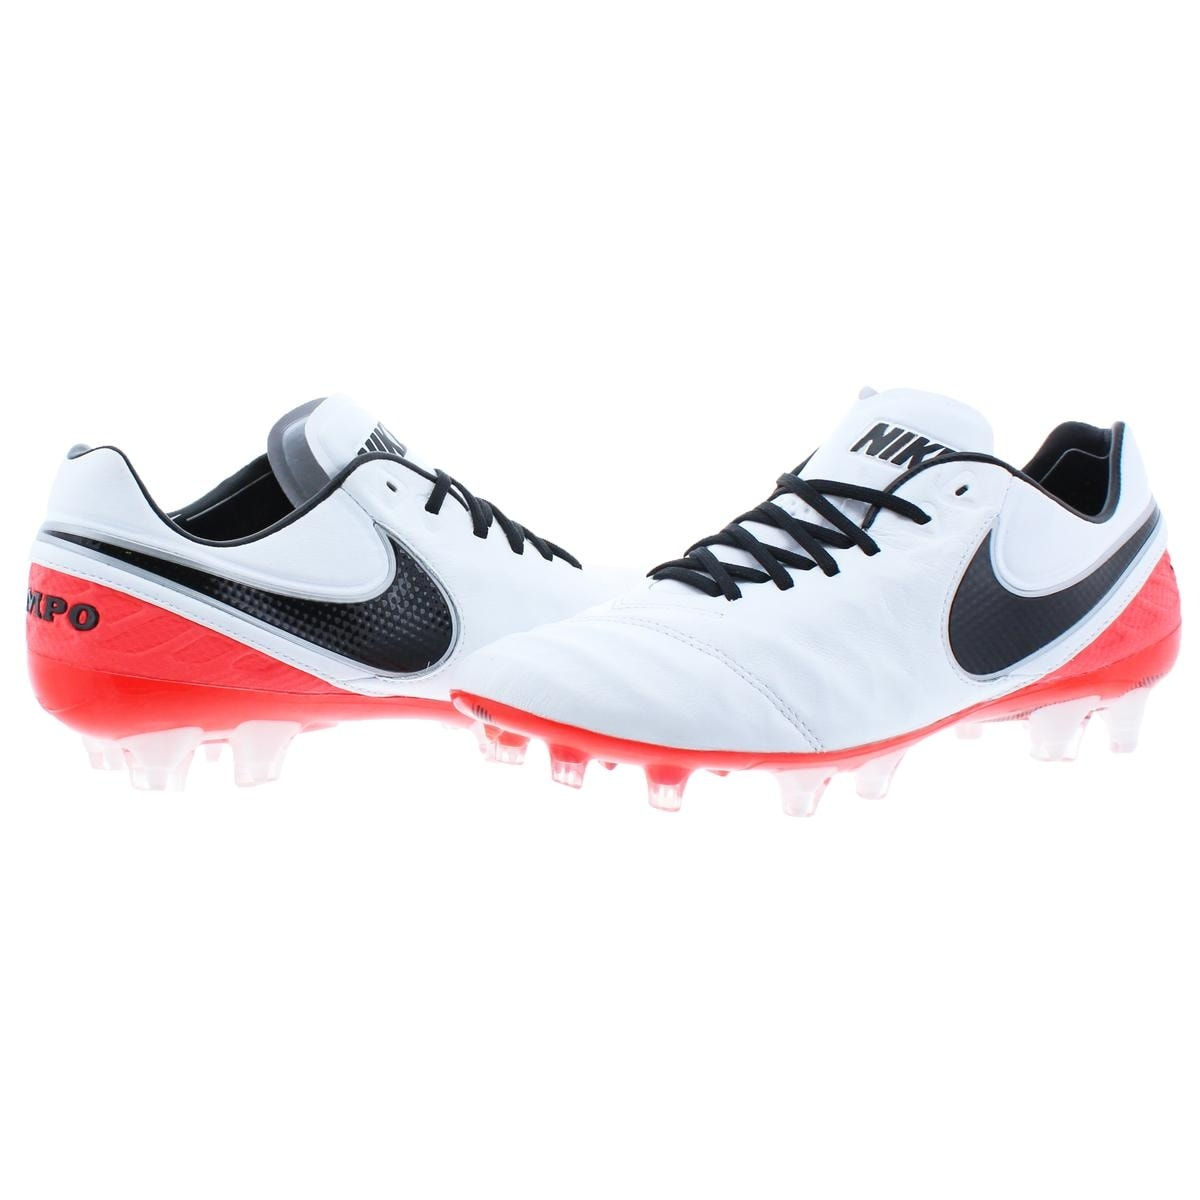 406bddbe1ff8 Shop Nike Womens Tiempo Legend VI FG Cleats Soccer ACC - 11.5 medium (b,m)  - Free Shipping On Orders Over $45 - Overstock - 22582082